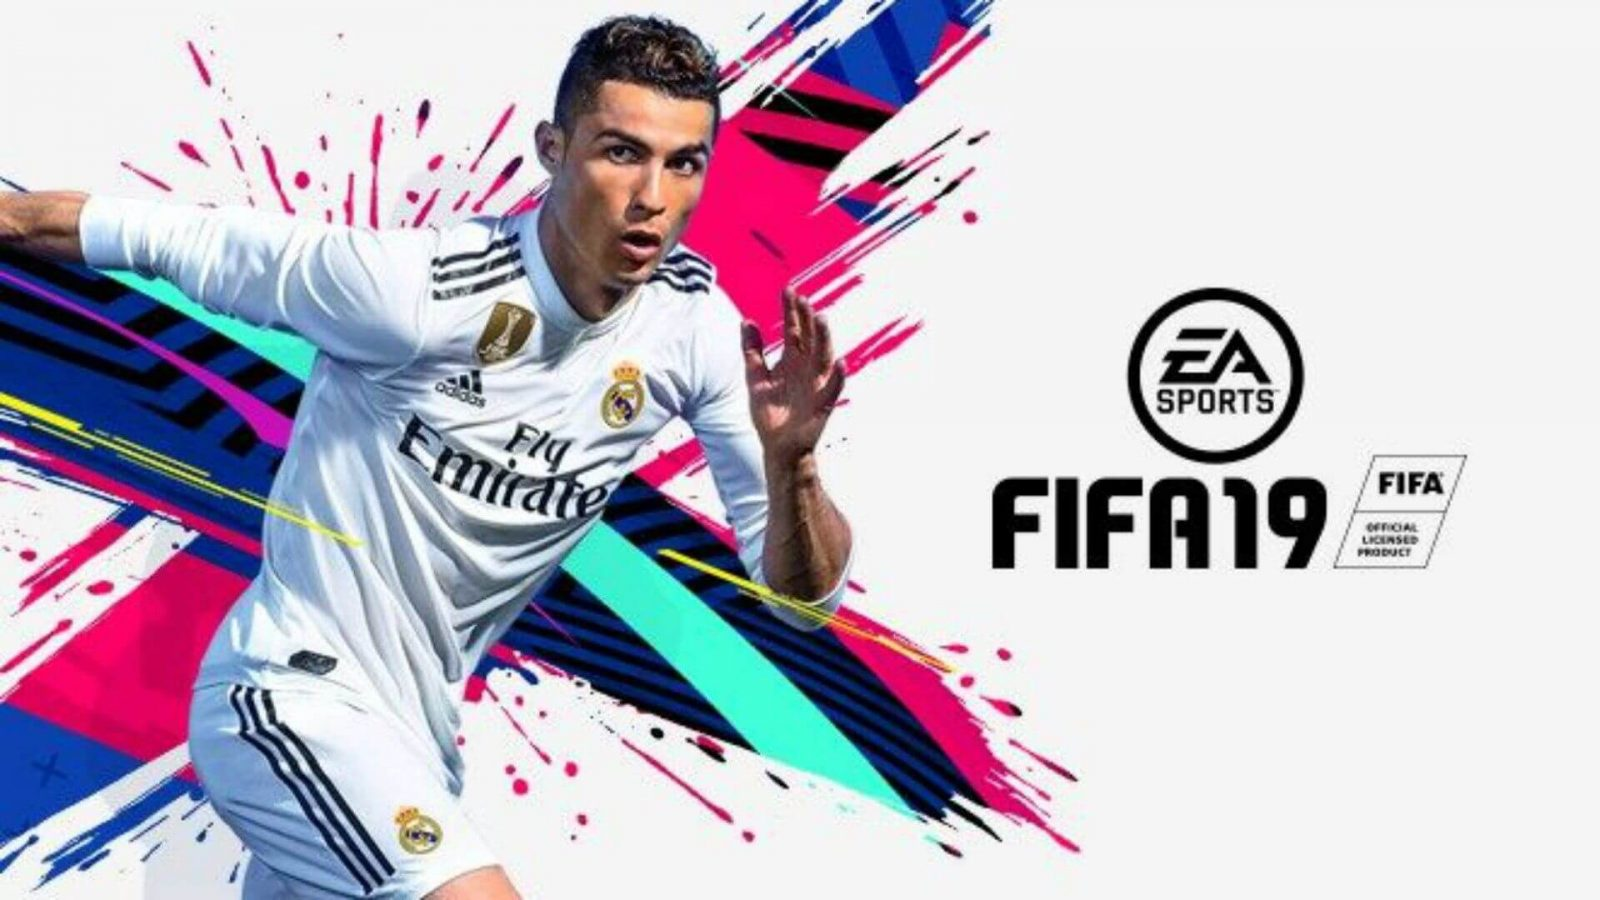 FIFA 19 COMPLETO PC - Torrent